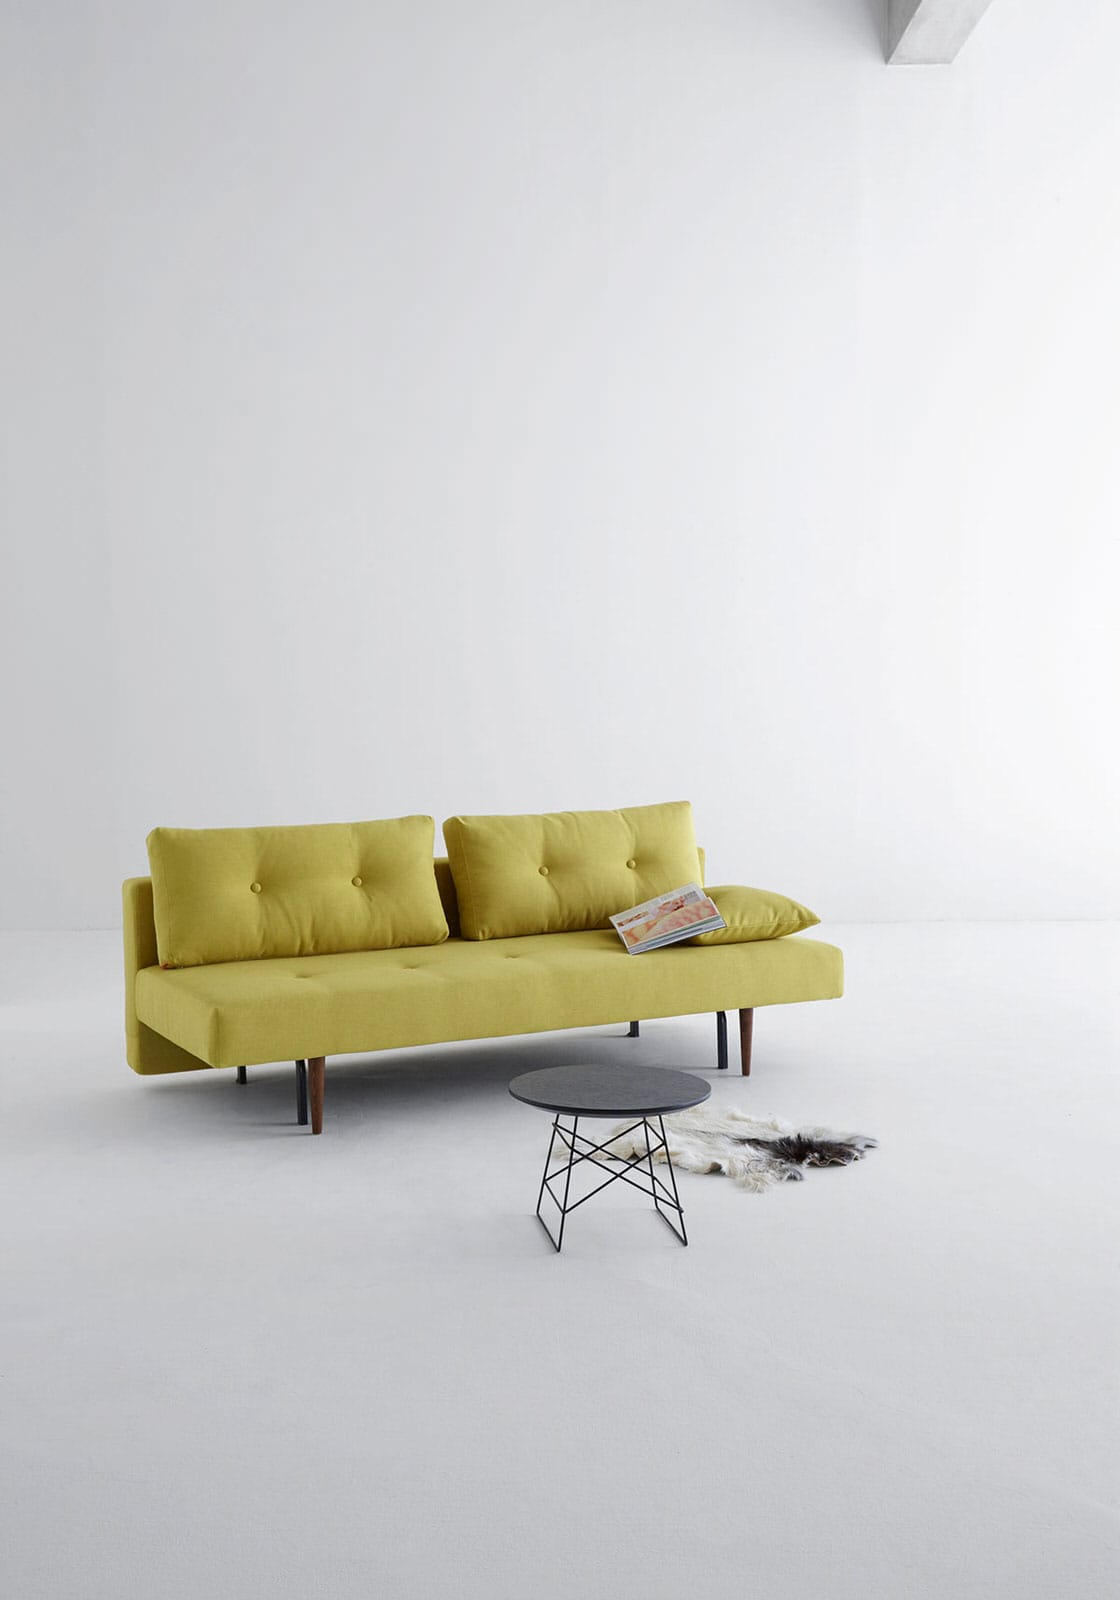 Recast Plus Sofa Bed Full Size Soft Mustard Flower By